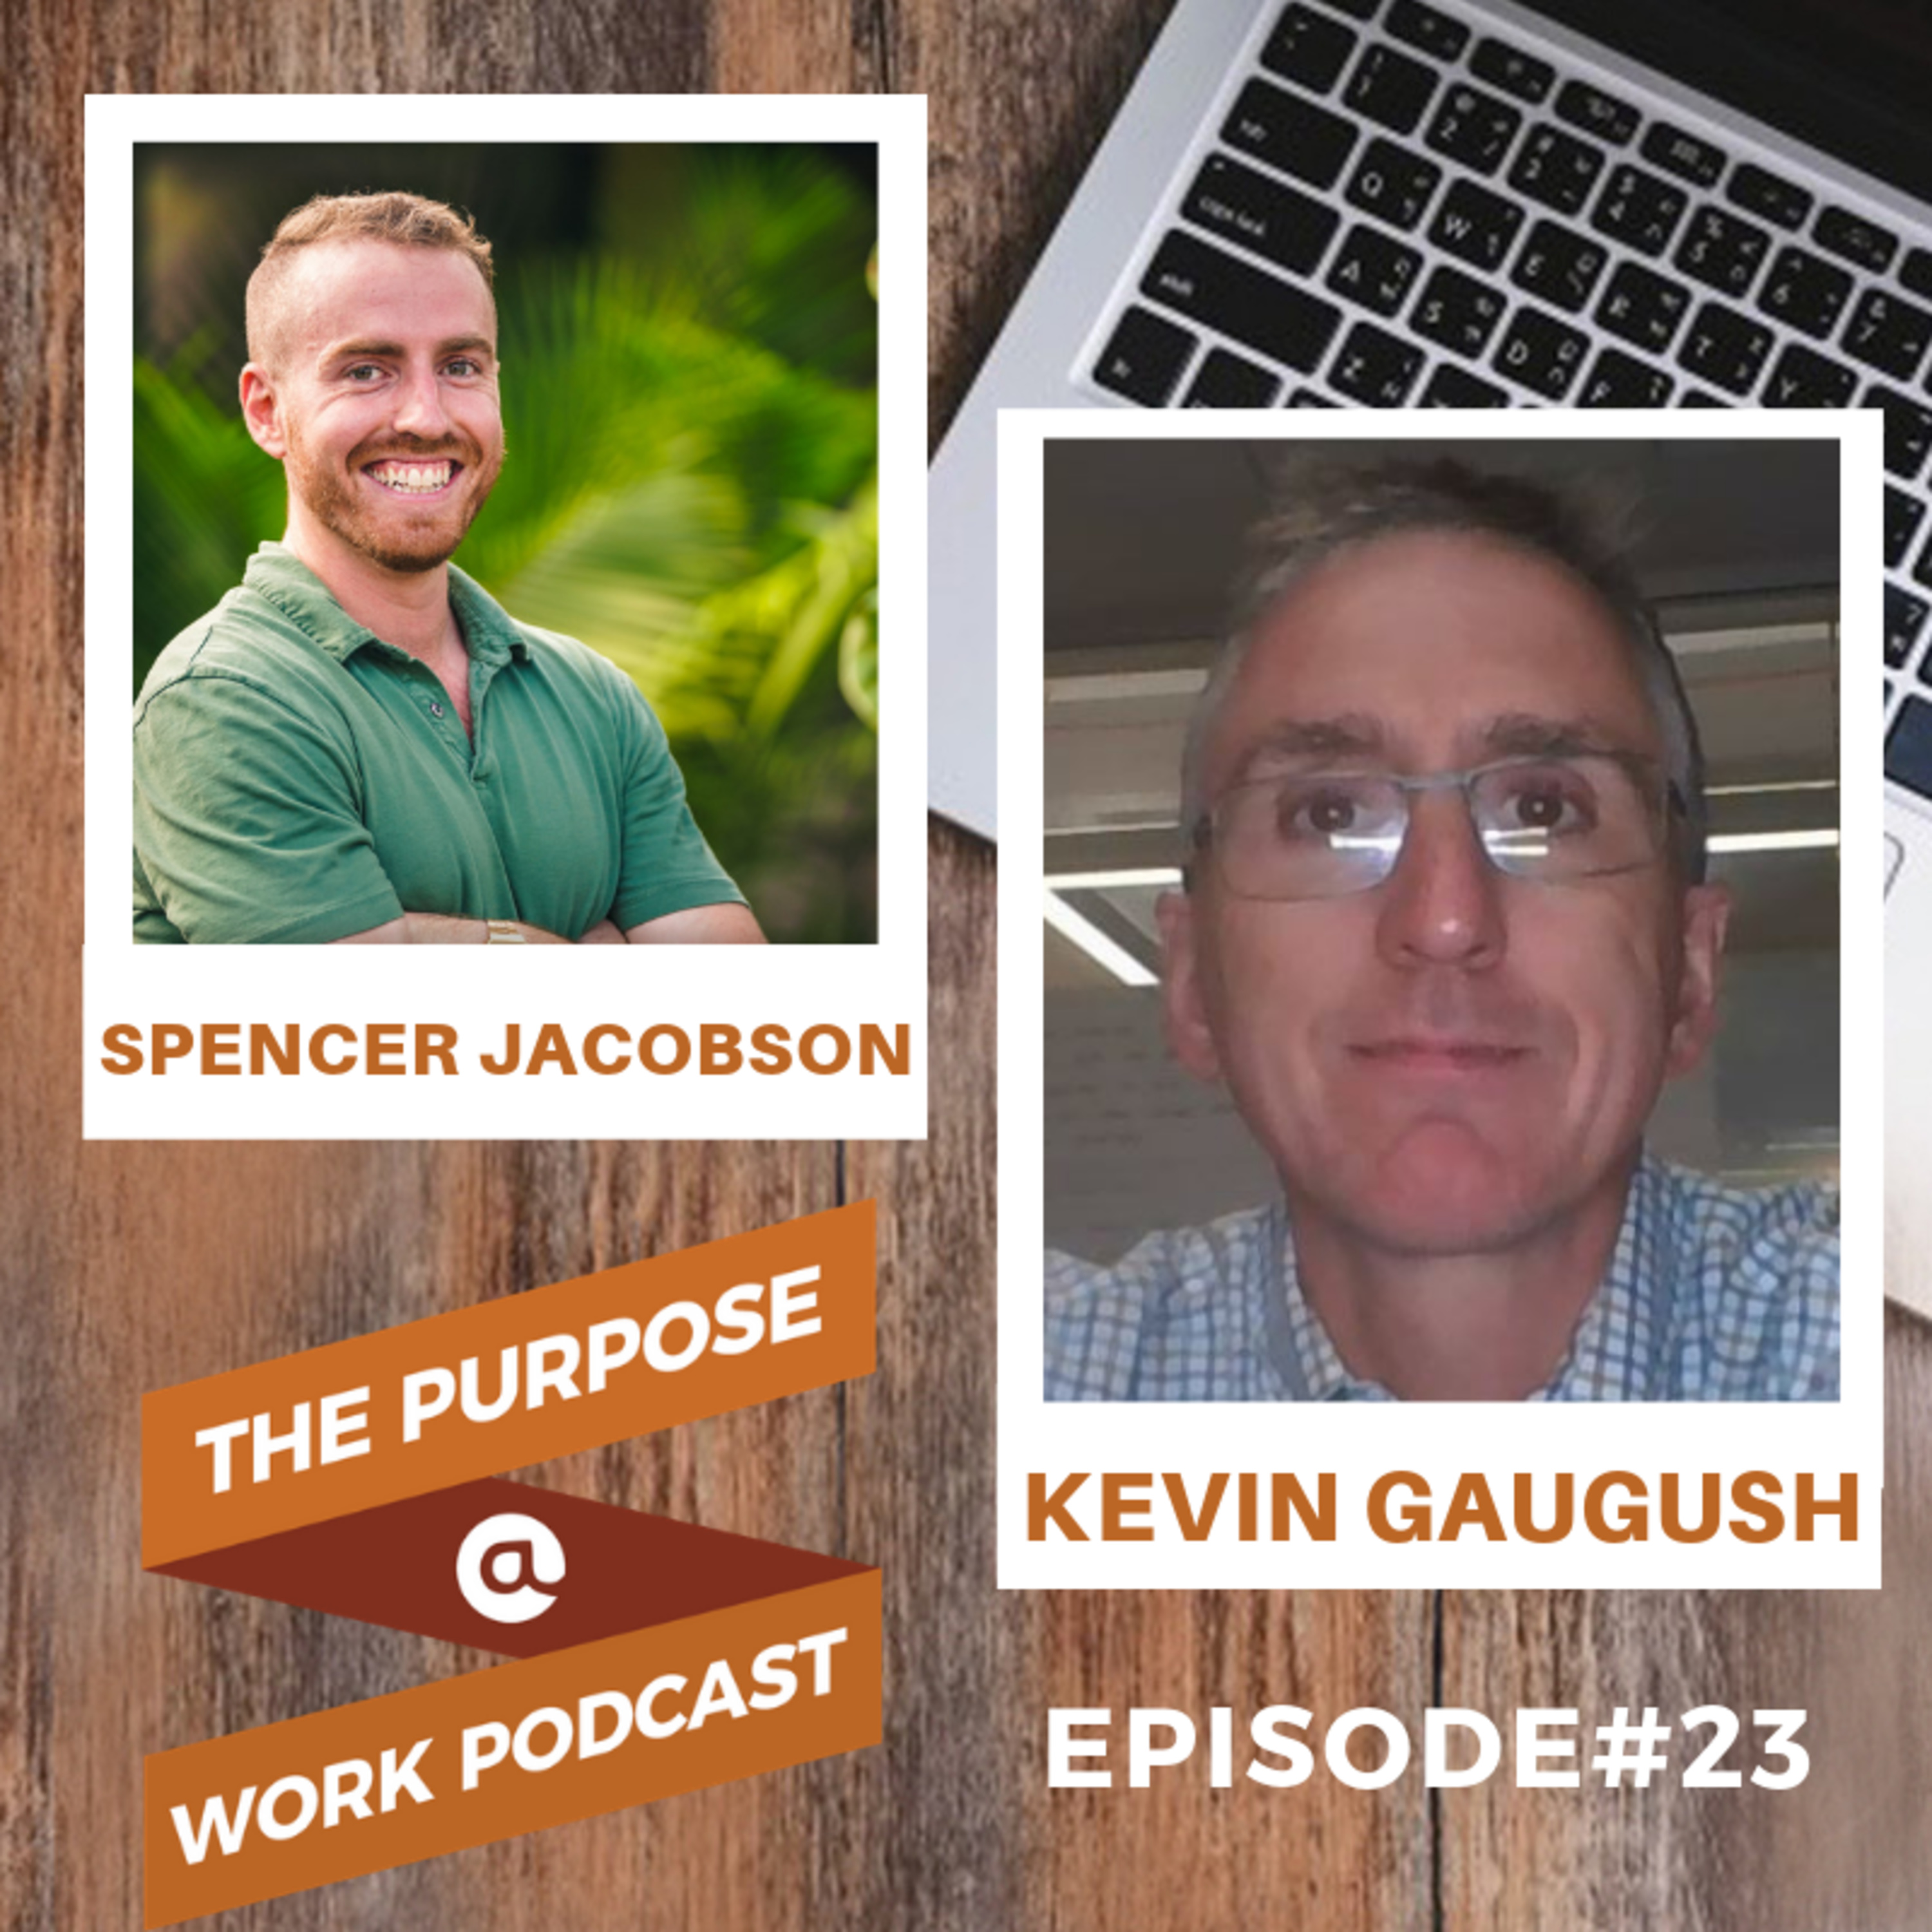 #23 Kevin Gaugush - Senior Vice President, Human Resources @ Clean Harbors: How AI Will Change the Future of Education